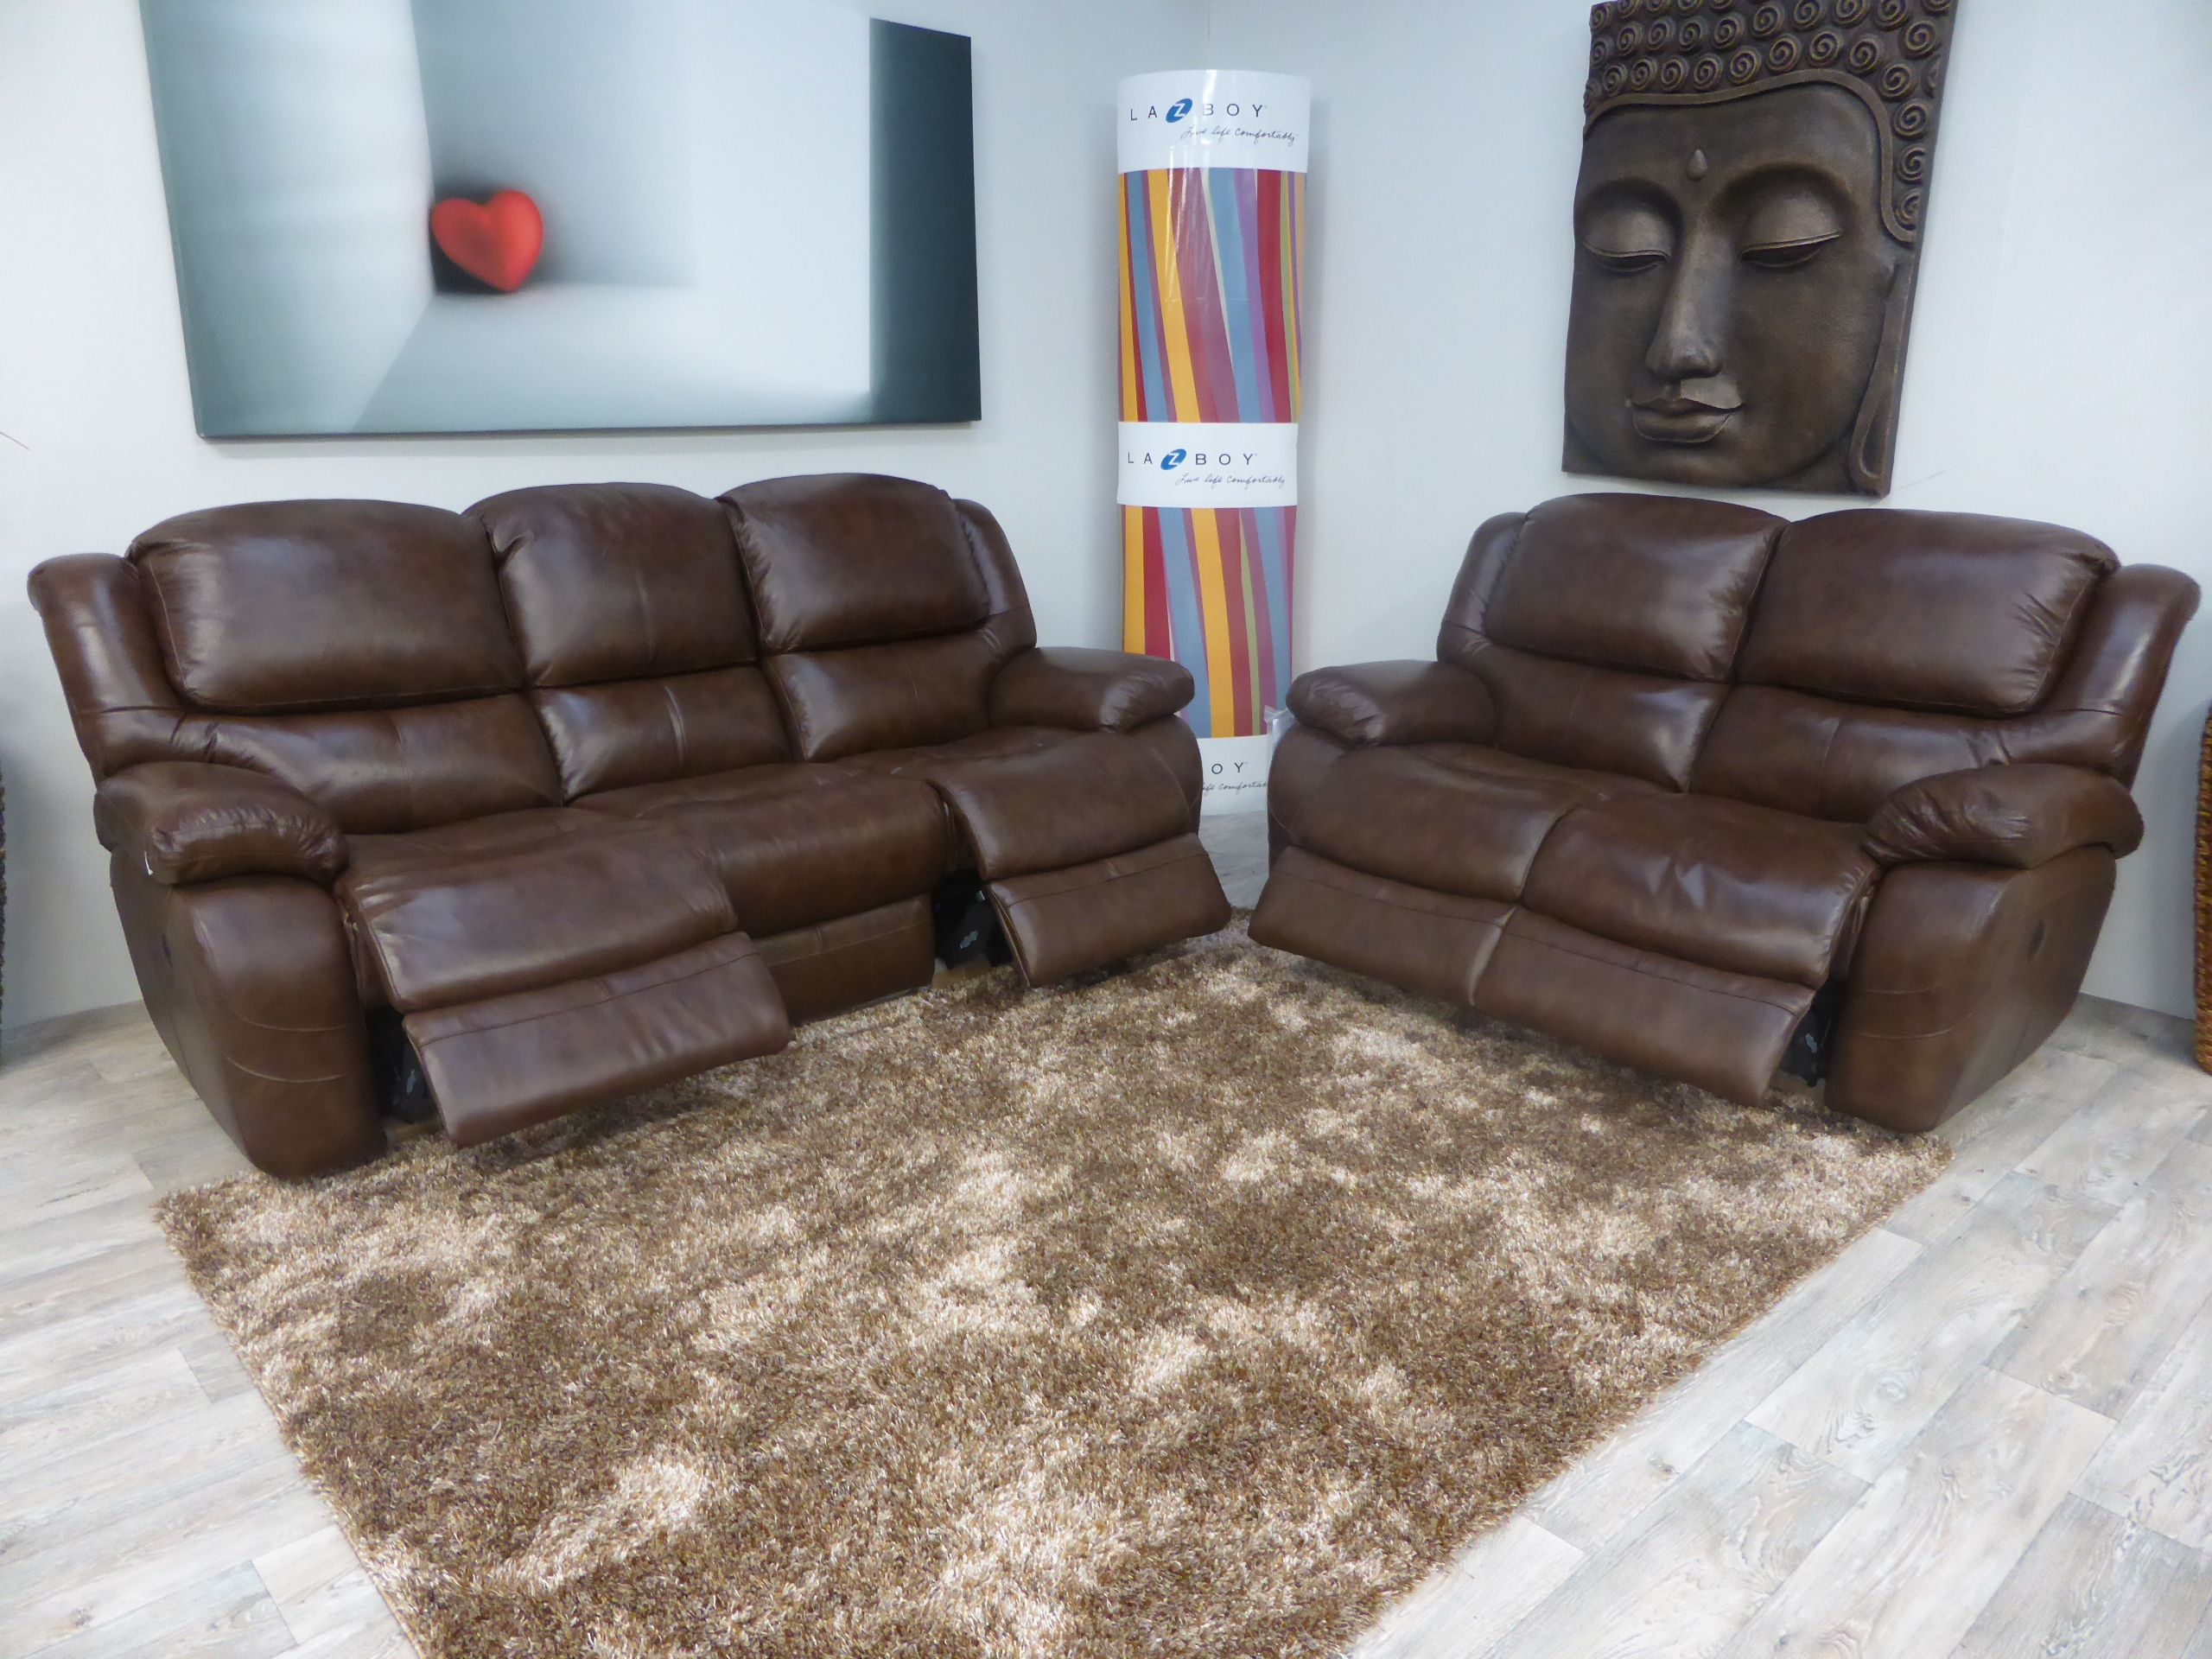 la z boy recliner chairs uk overstuffed chair and ottoman covers ava leather 3 seater power 2 manual